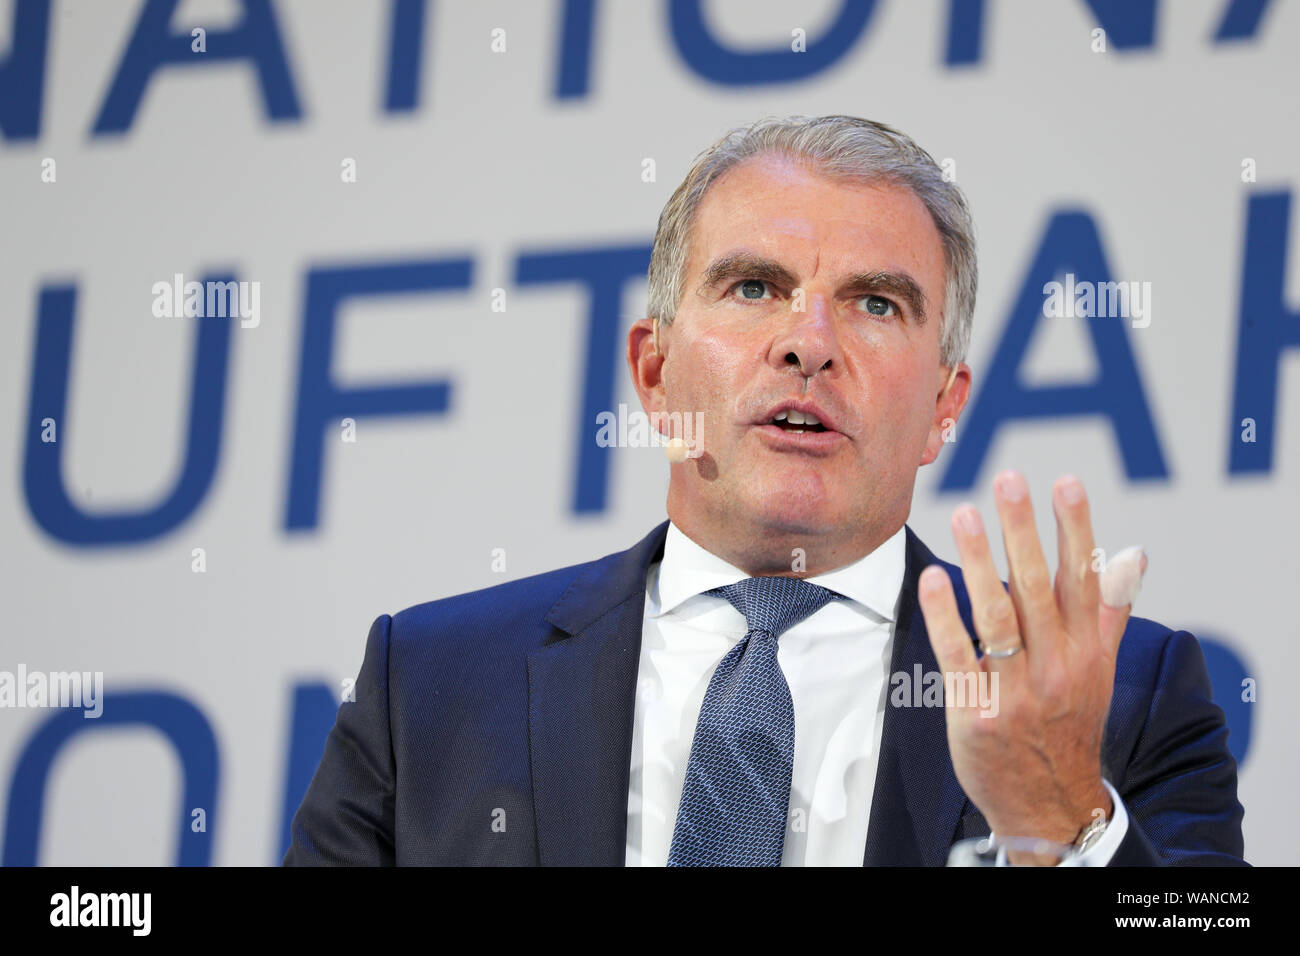 Schkeuditz, Germany. 21st Aug, 2019. Carsten Spohr, Chairman of the Executive Board of Deutsche Lufthansa AG, is on the podium at the first National Aviation Conference at Leipzig-Halle Airport. Credit: Jan Woitas/dpa-Zentralbild/dpa/Alamy Live News Stock Photo